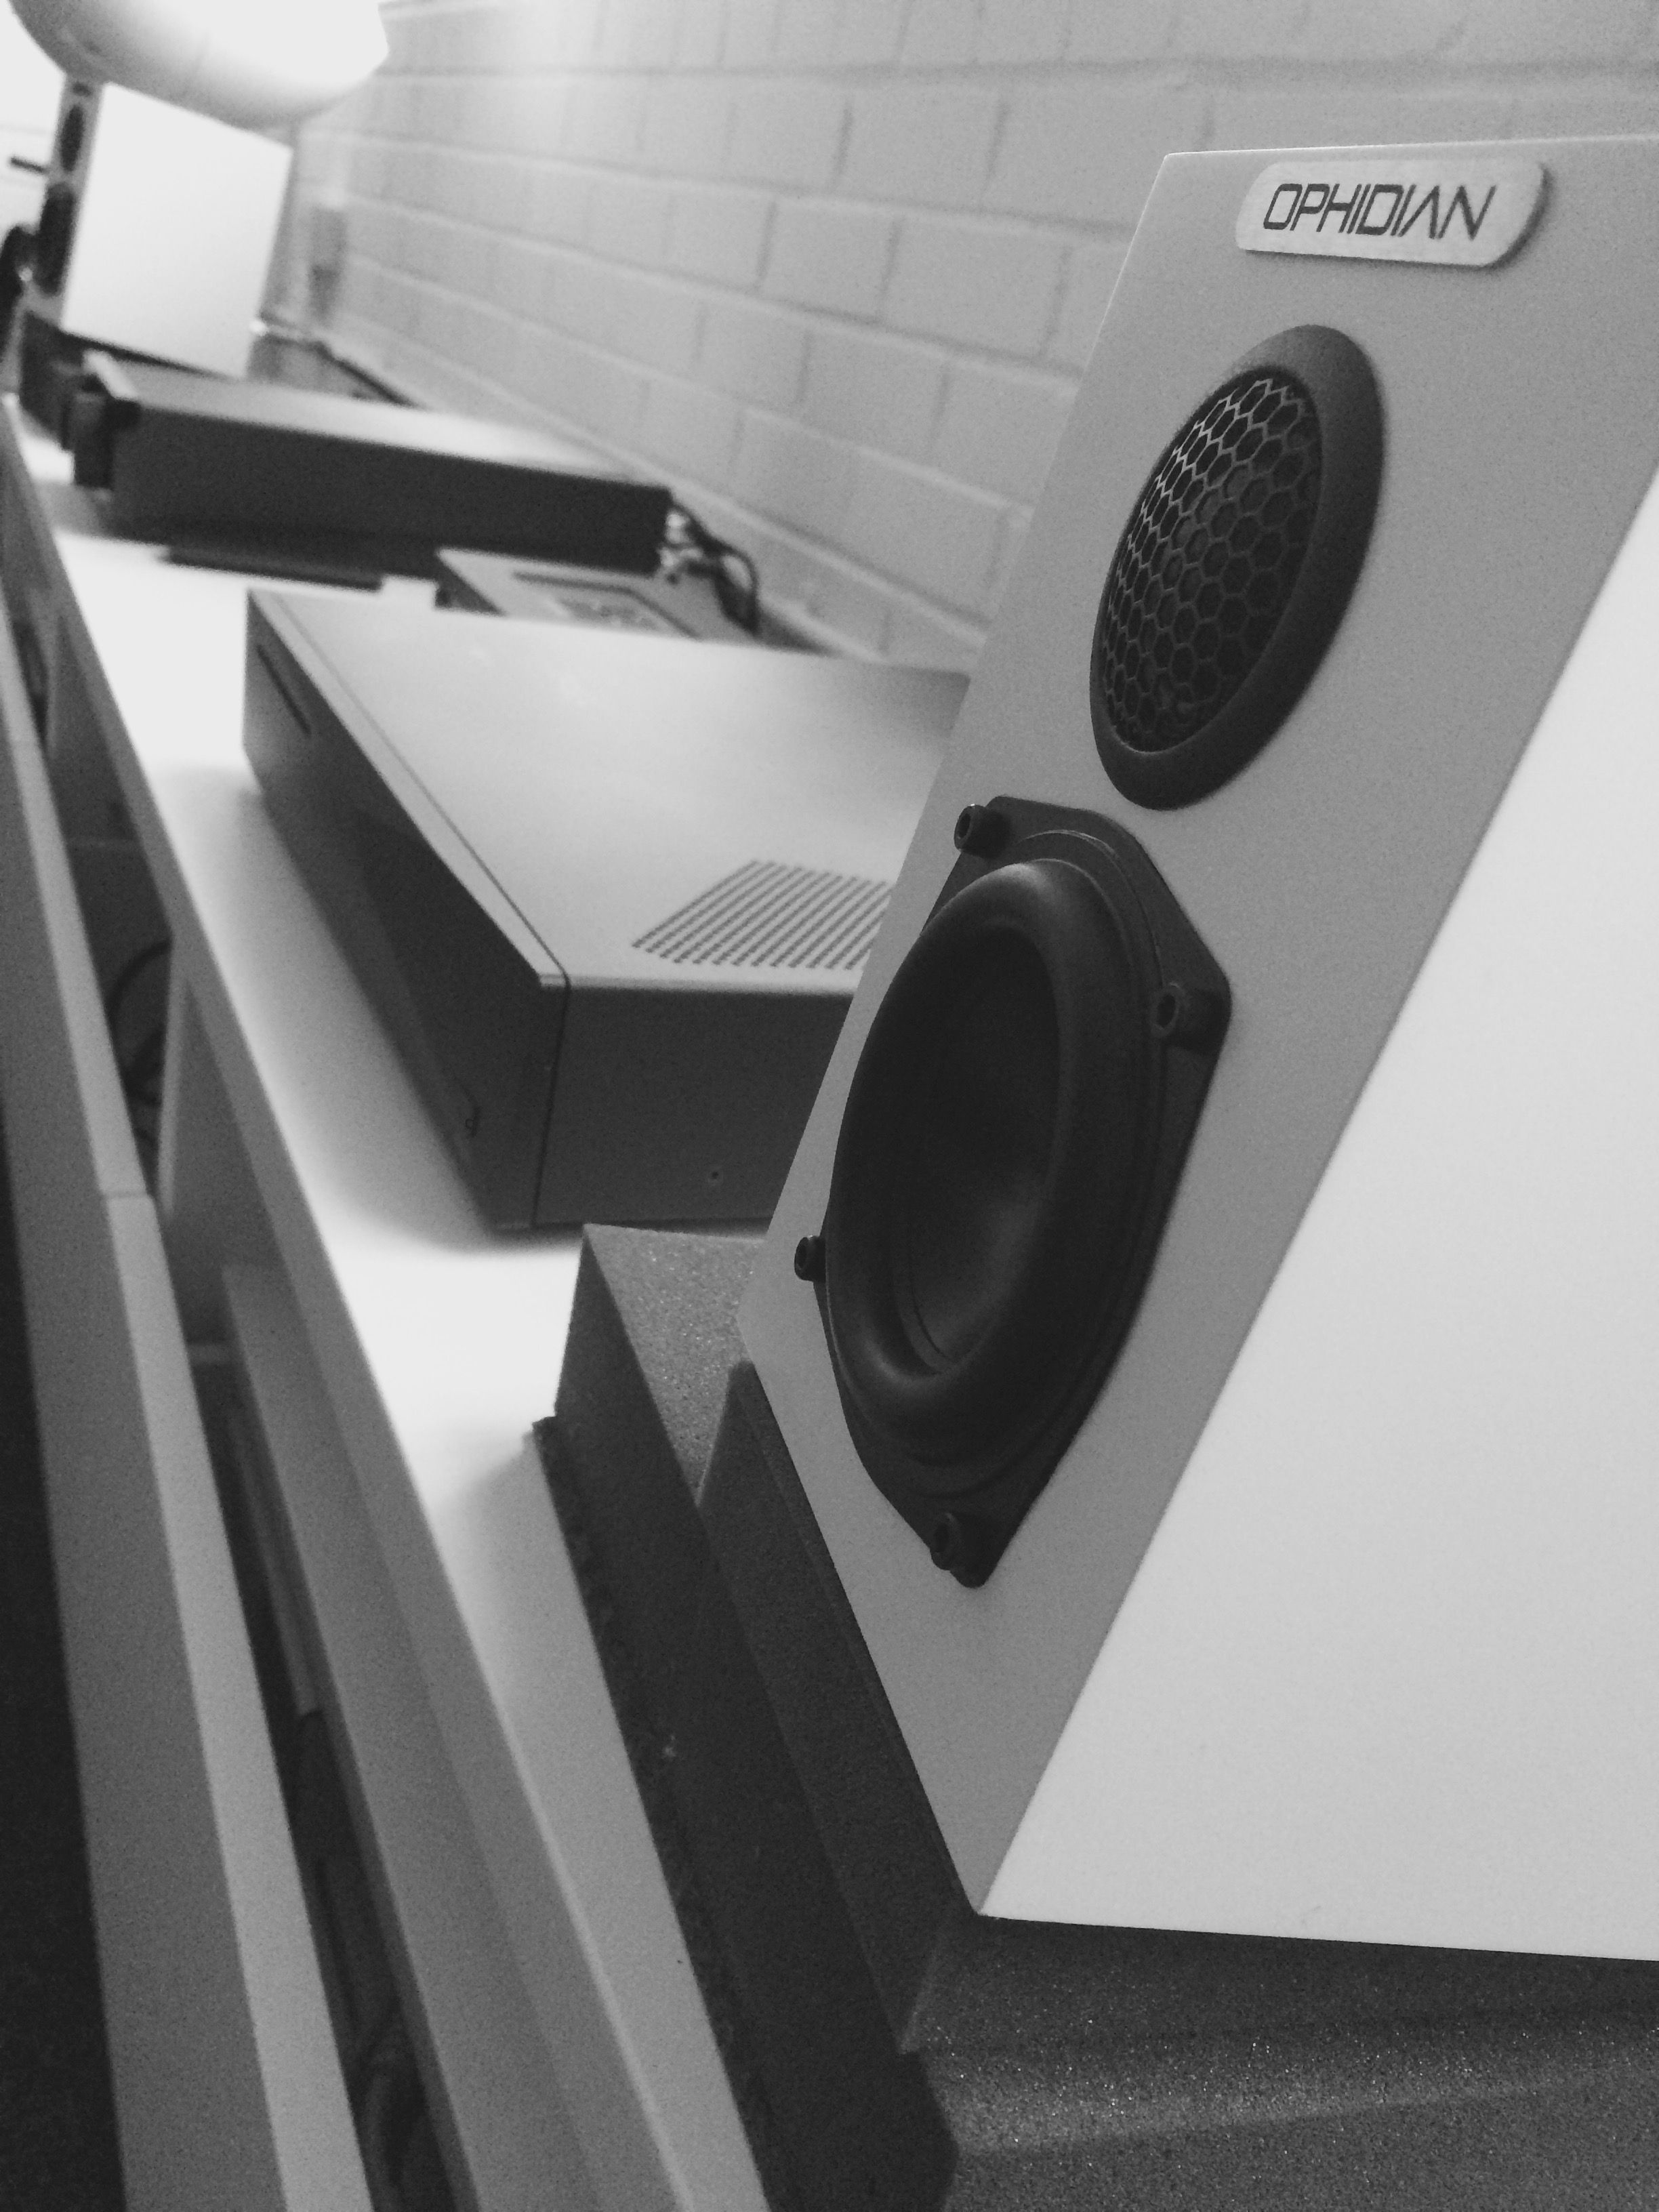 Ophidian Minimo loudspeakers, alongside the Innuos ZENith